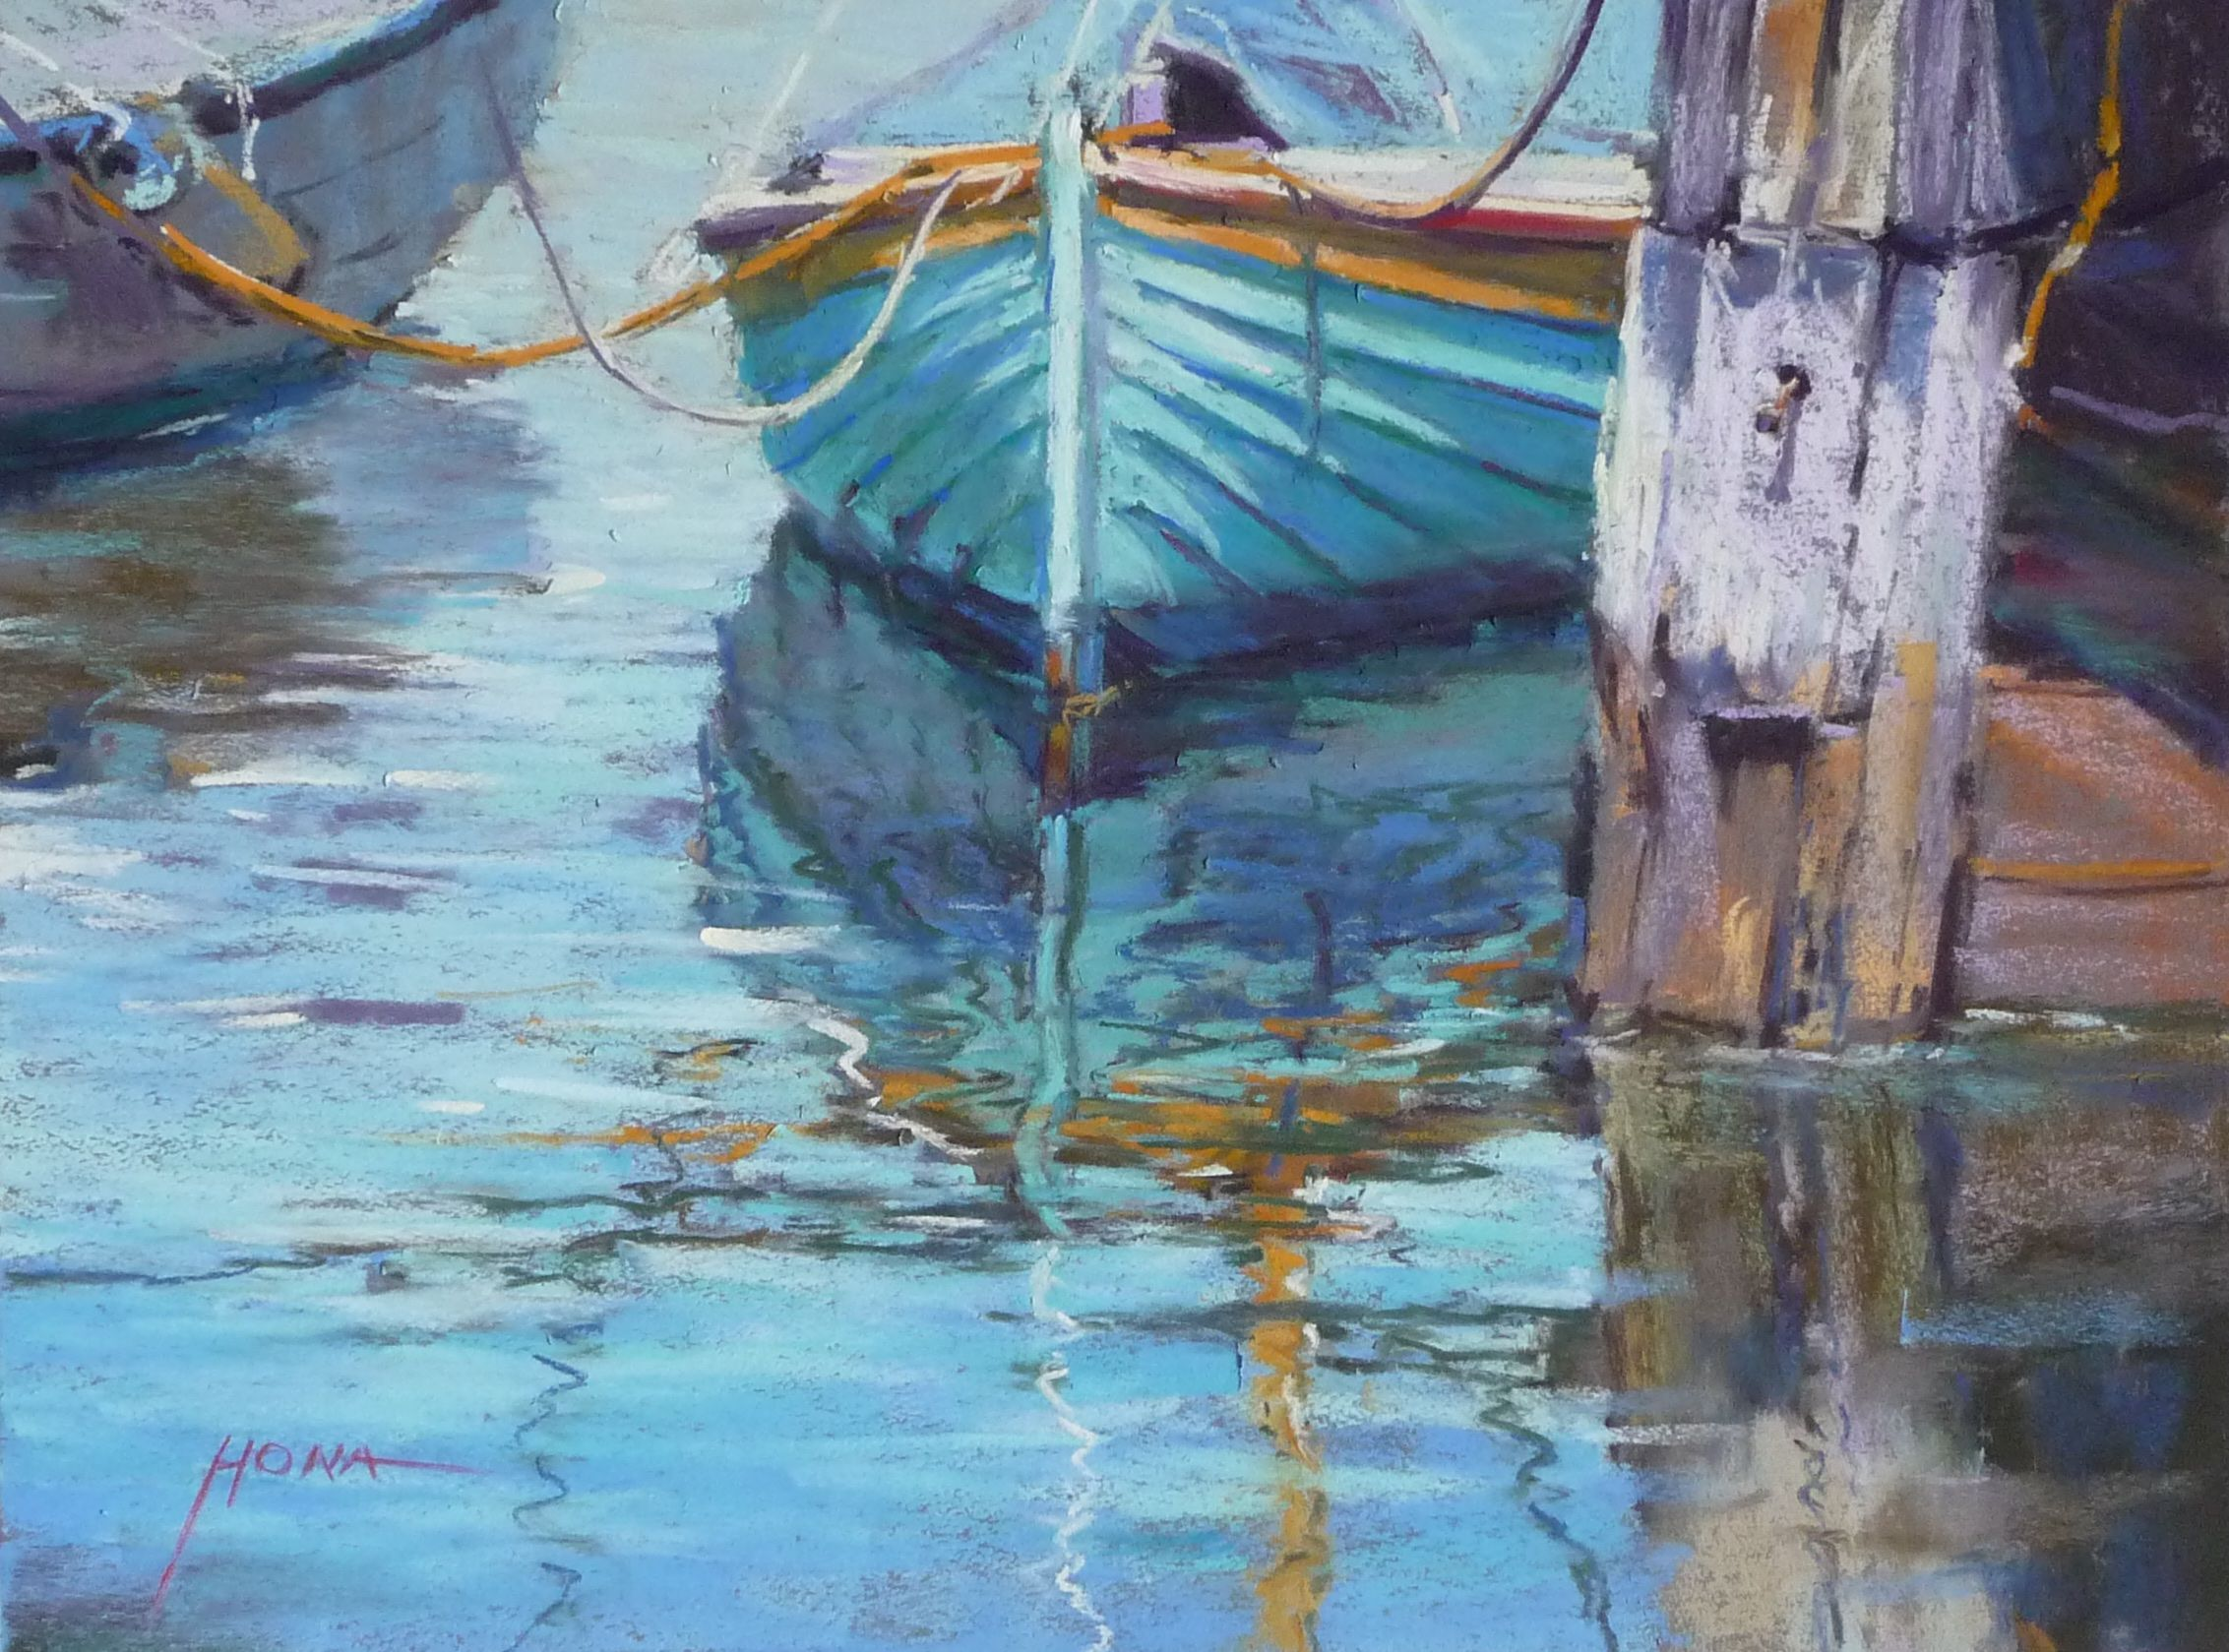 Pin von Regina Hona auf Paintings - Waterscapes | Pinterest